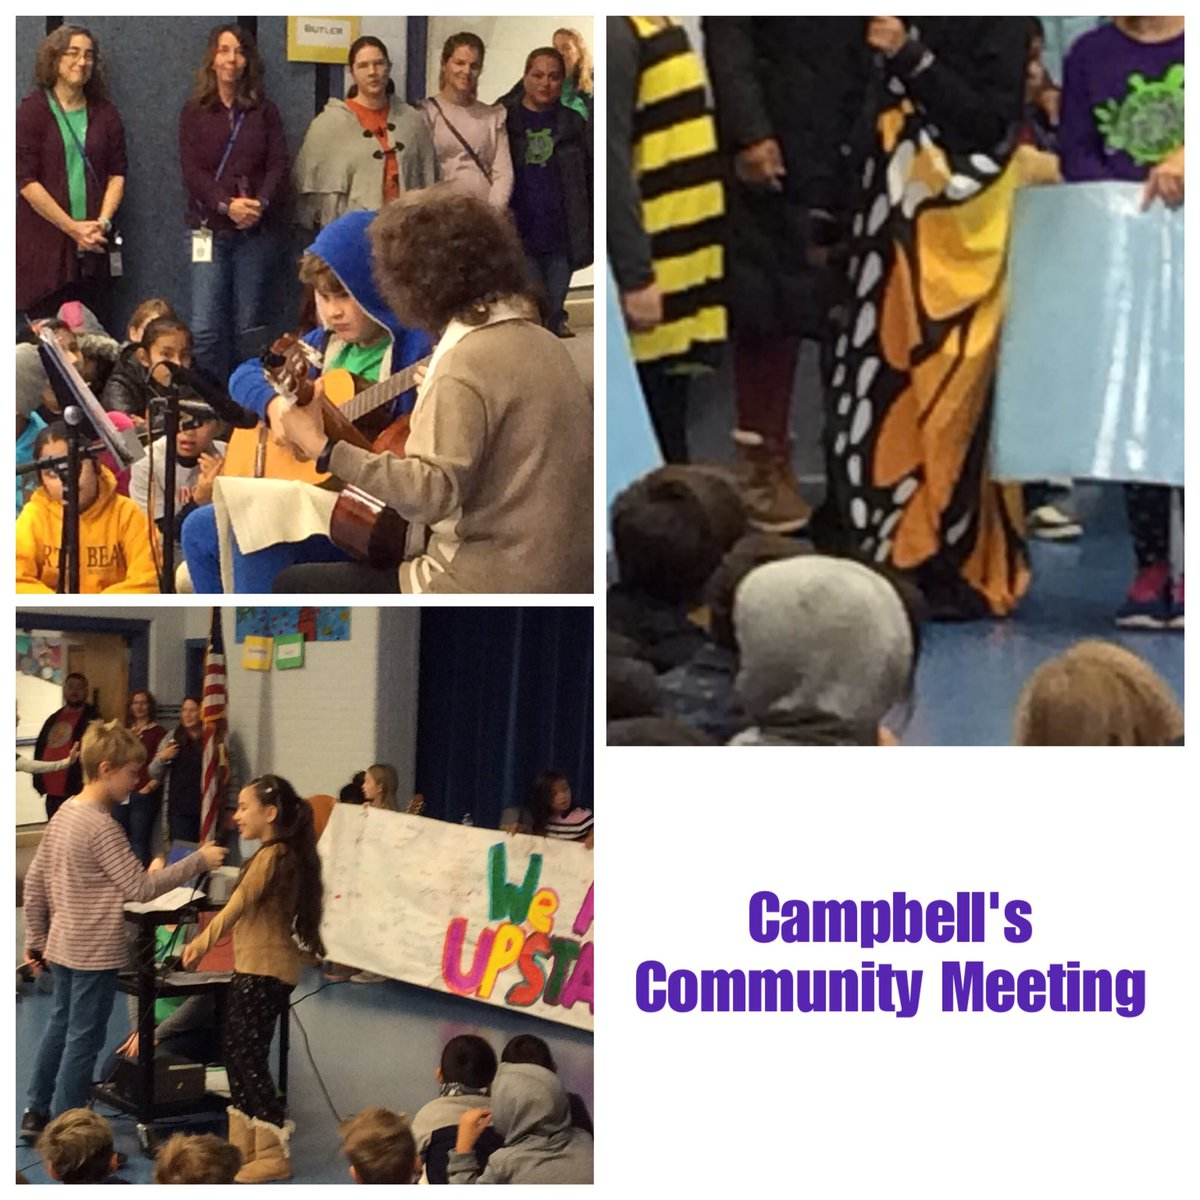 Community Meeting <a target='_blank' href='http://twitter.com/CampbellAPS'>@CampbellAPS</a> is such a joyous time each Friday when students share their learning with the whole community. <a target='_blank' href='http://twitter.com/ELeducation'>@ELeducation</a> <a target='_blank' href='http://twitter.com/MsPerrysclass1'>@MsPerrysclass1</a> <a target='_blank' href='http://twitter.com/davitt45'>@davitt45</a> <a target='_blank' href='https://t.co/E3IJpsSwKE'>https://t.co/E3IJpsSwKE</a>